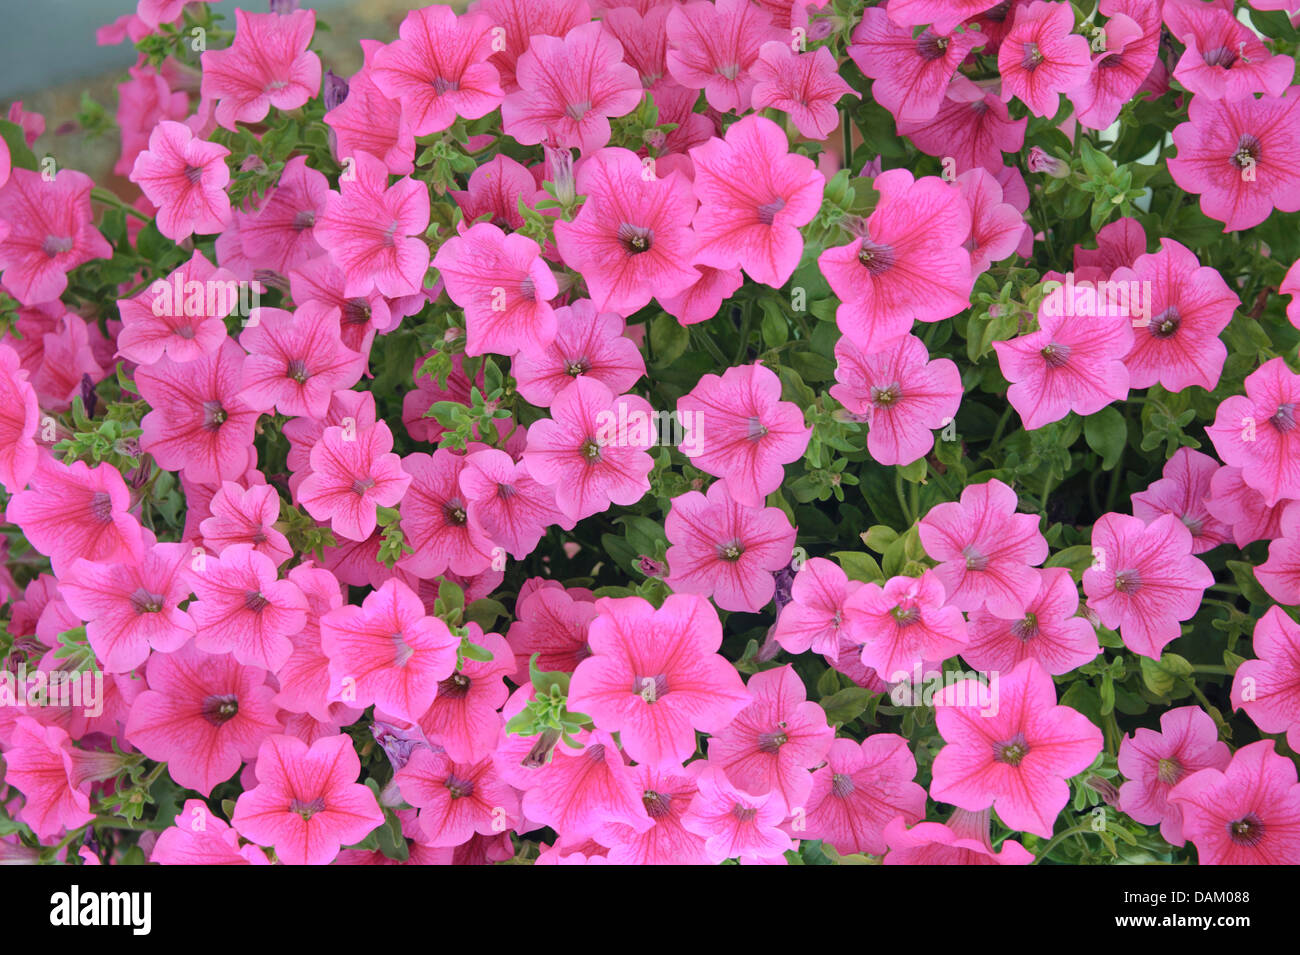 garden petunia (Petunia 'Hot Pink', Petunia Hot Pink), Cultivar Hot Pink, blooming - Stock Image